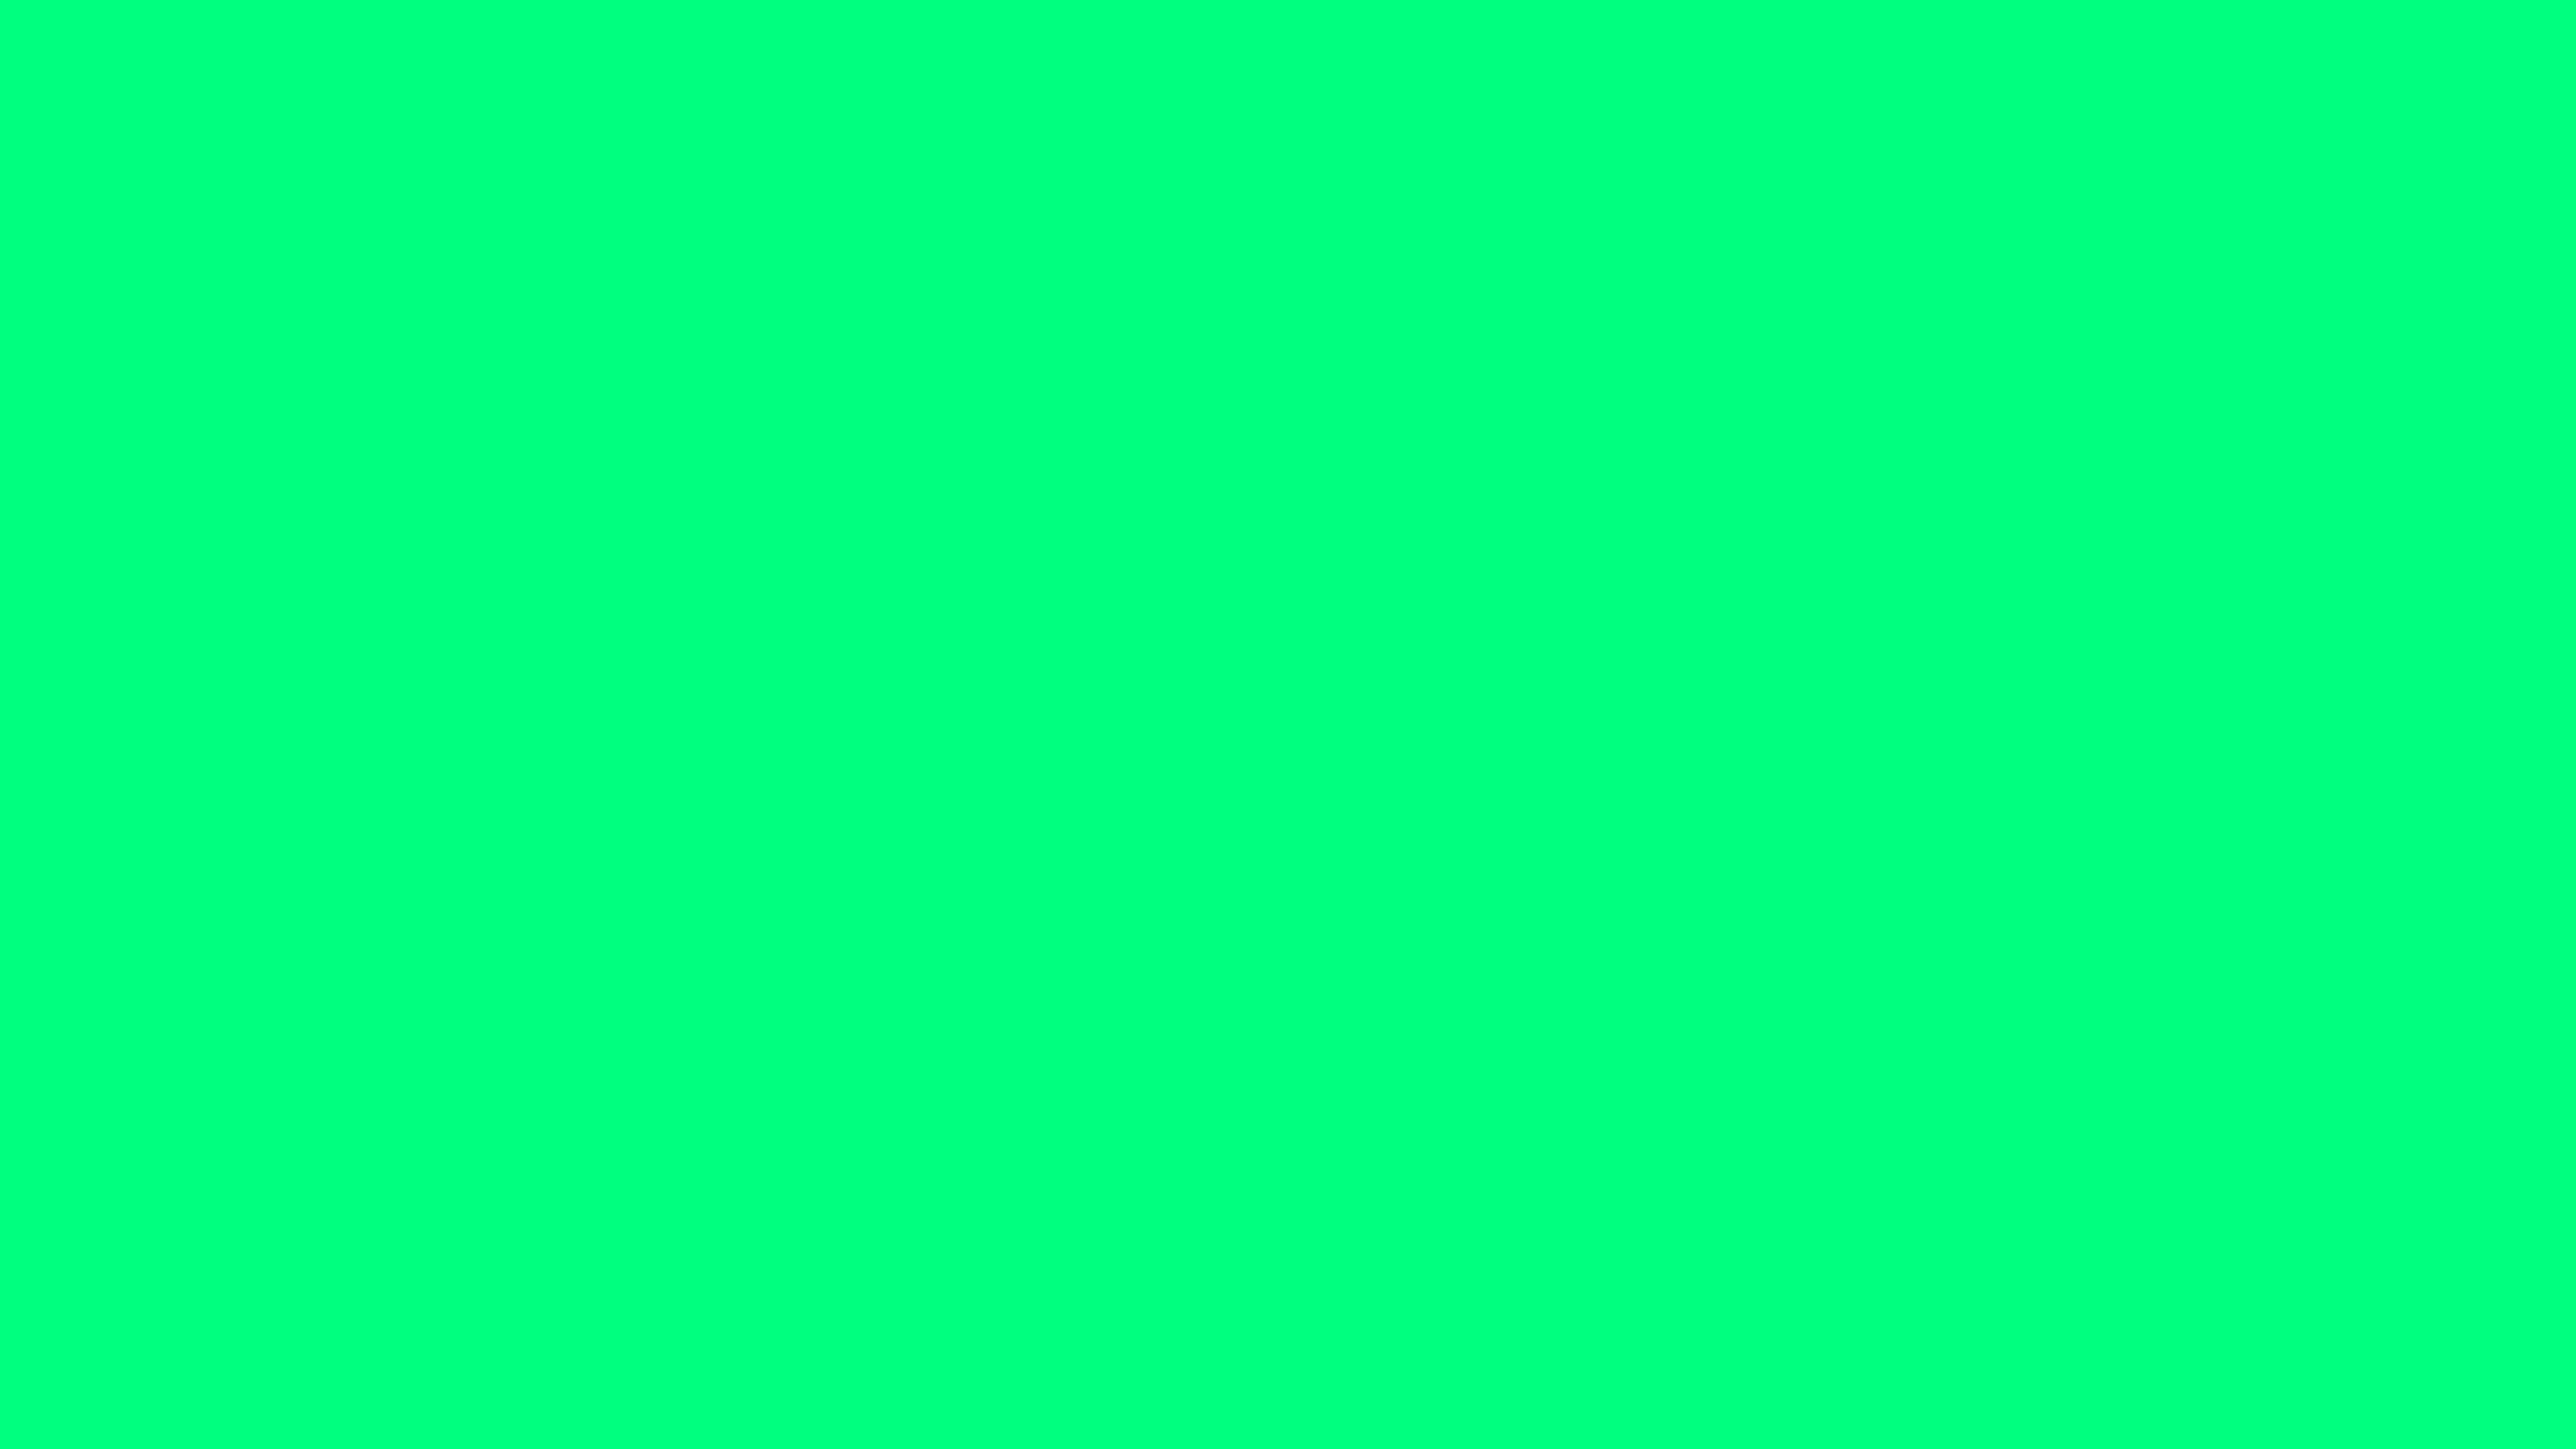 3840x2160 Guppie Green Solid Color Background